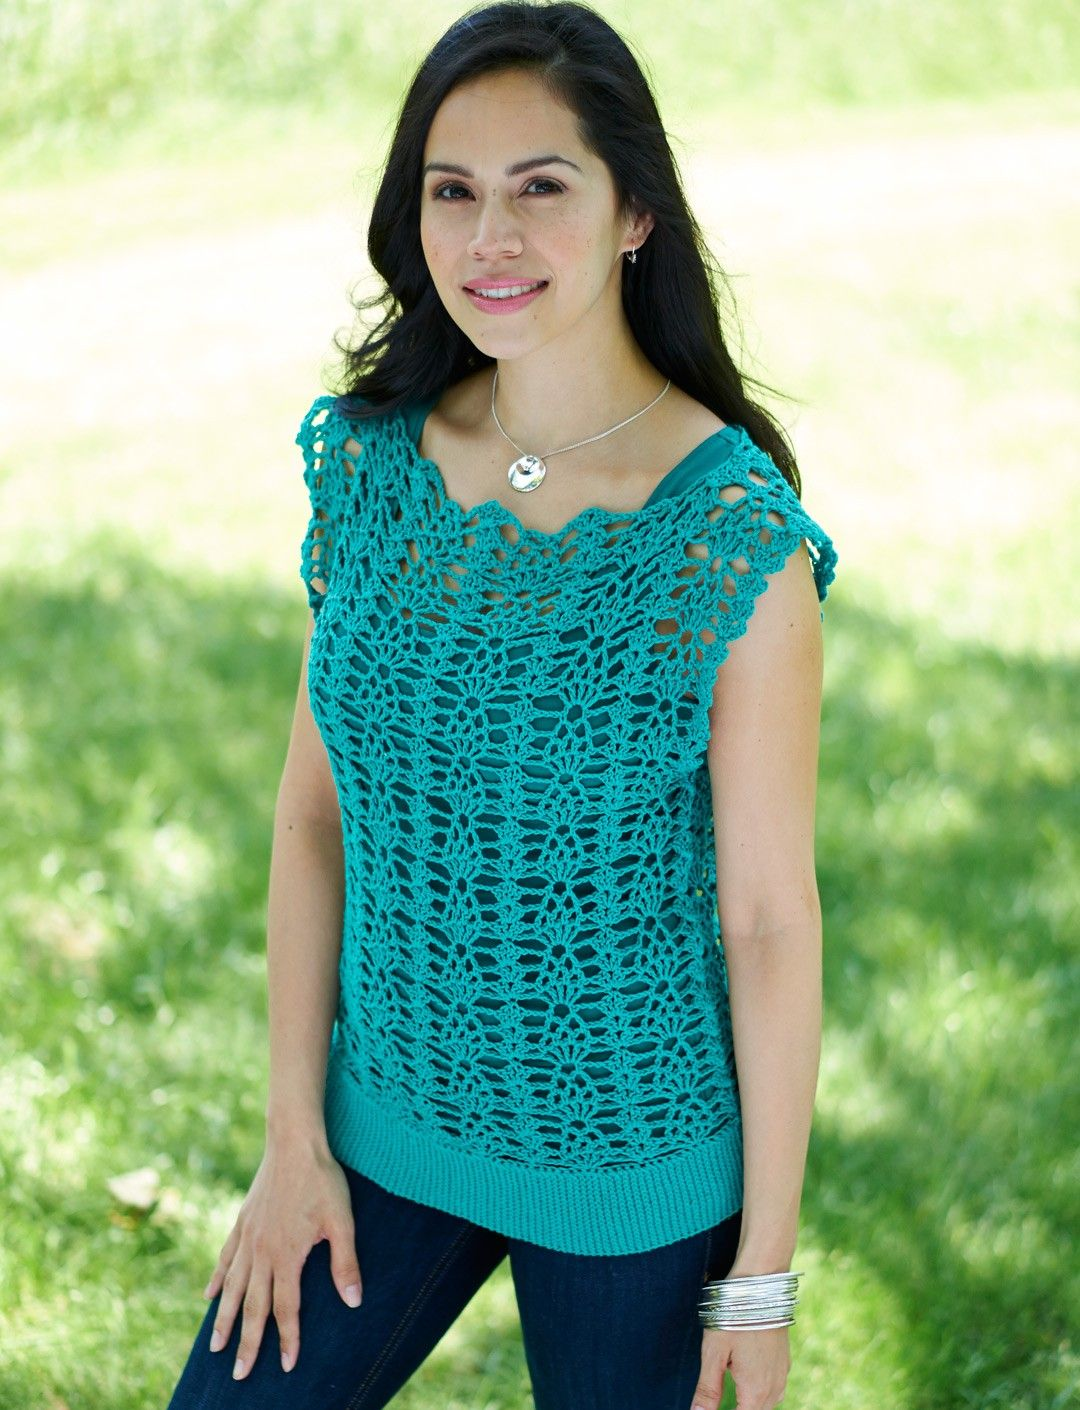 Yarnspirations bernat you tunic me on patterns bernat you tunic me on free crochet pattern skill level intermediate heat up your summer wardrobe with this lightweight tunic shown in bernat cotton ish bankloansurffo Image collections